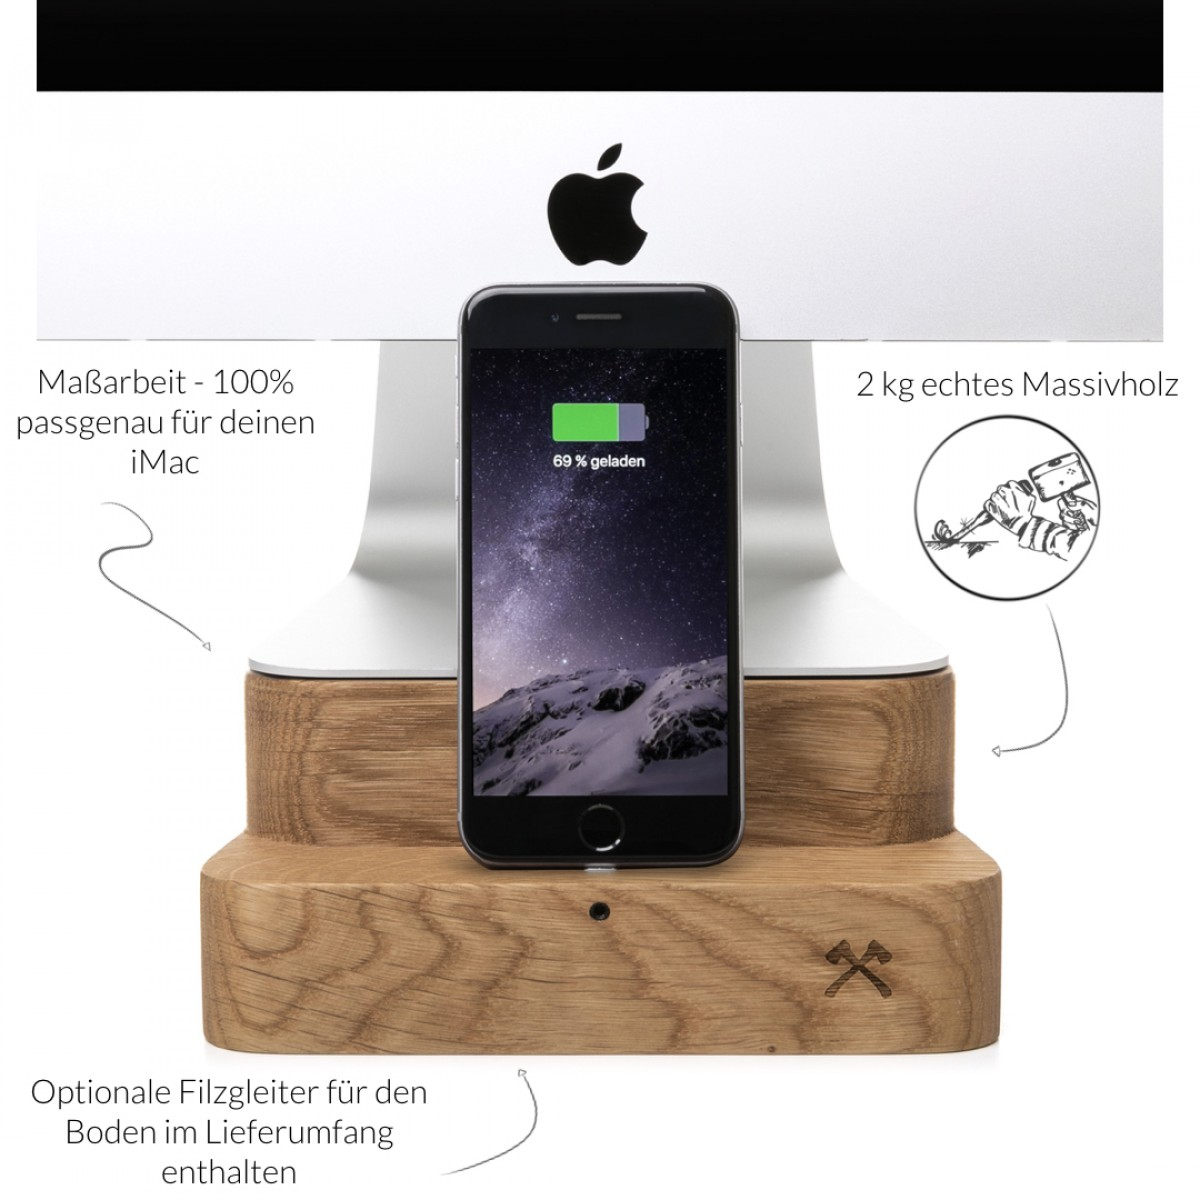 "Woodcessories - EcoFoot Dock Edt. - Premium iMac Stand + iPhone Dock für den Apple iMac & alle iPhones aus massivem Holz (iMac 27"", Eiche)"